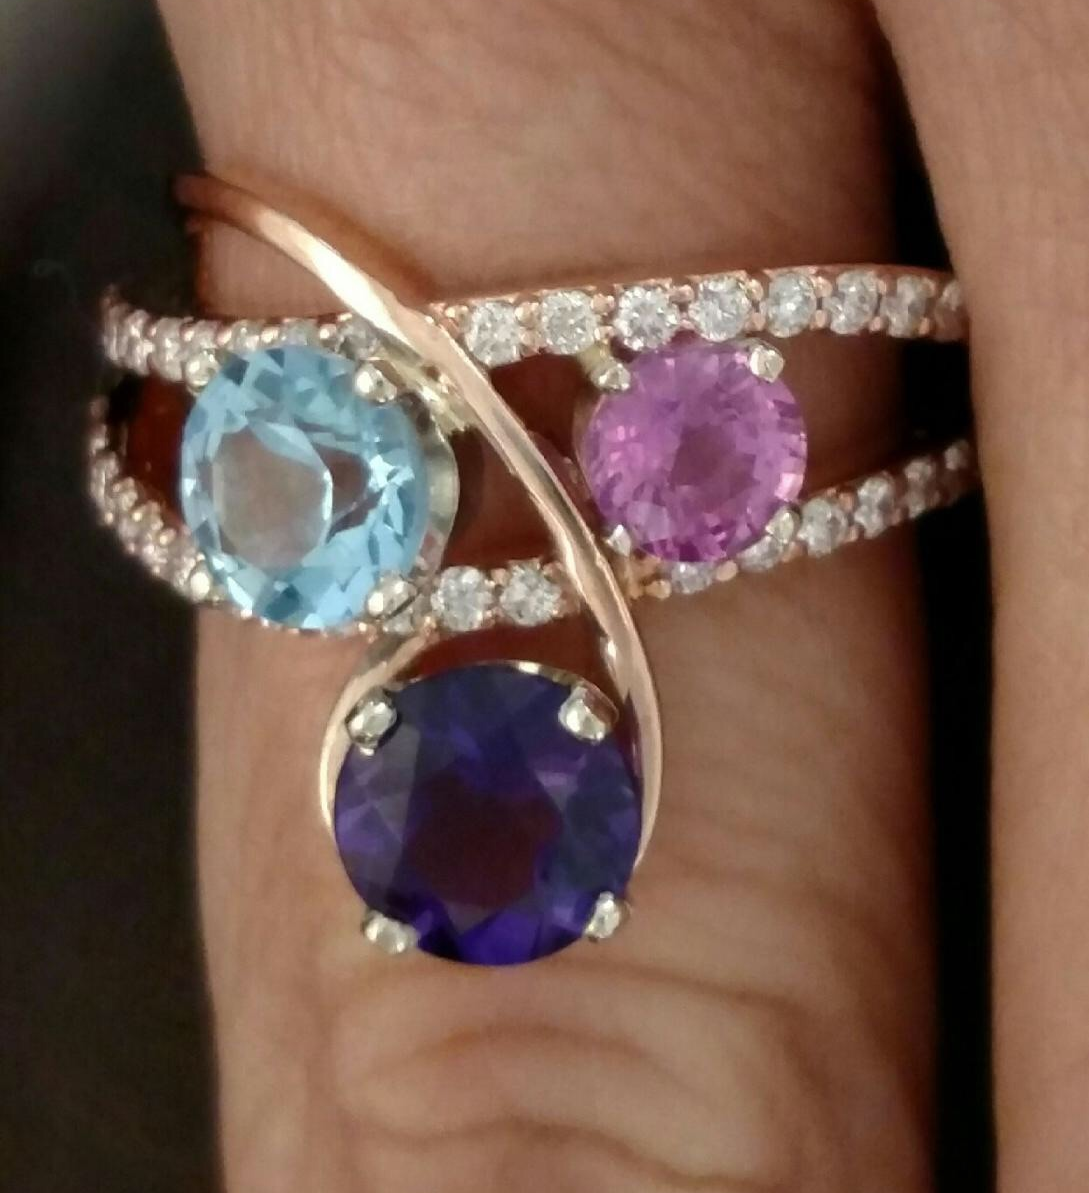 Completed New Setting with Gemstones